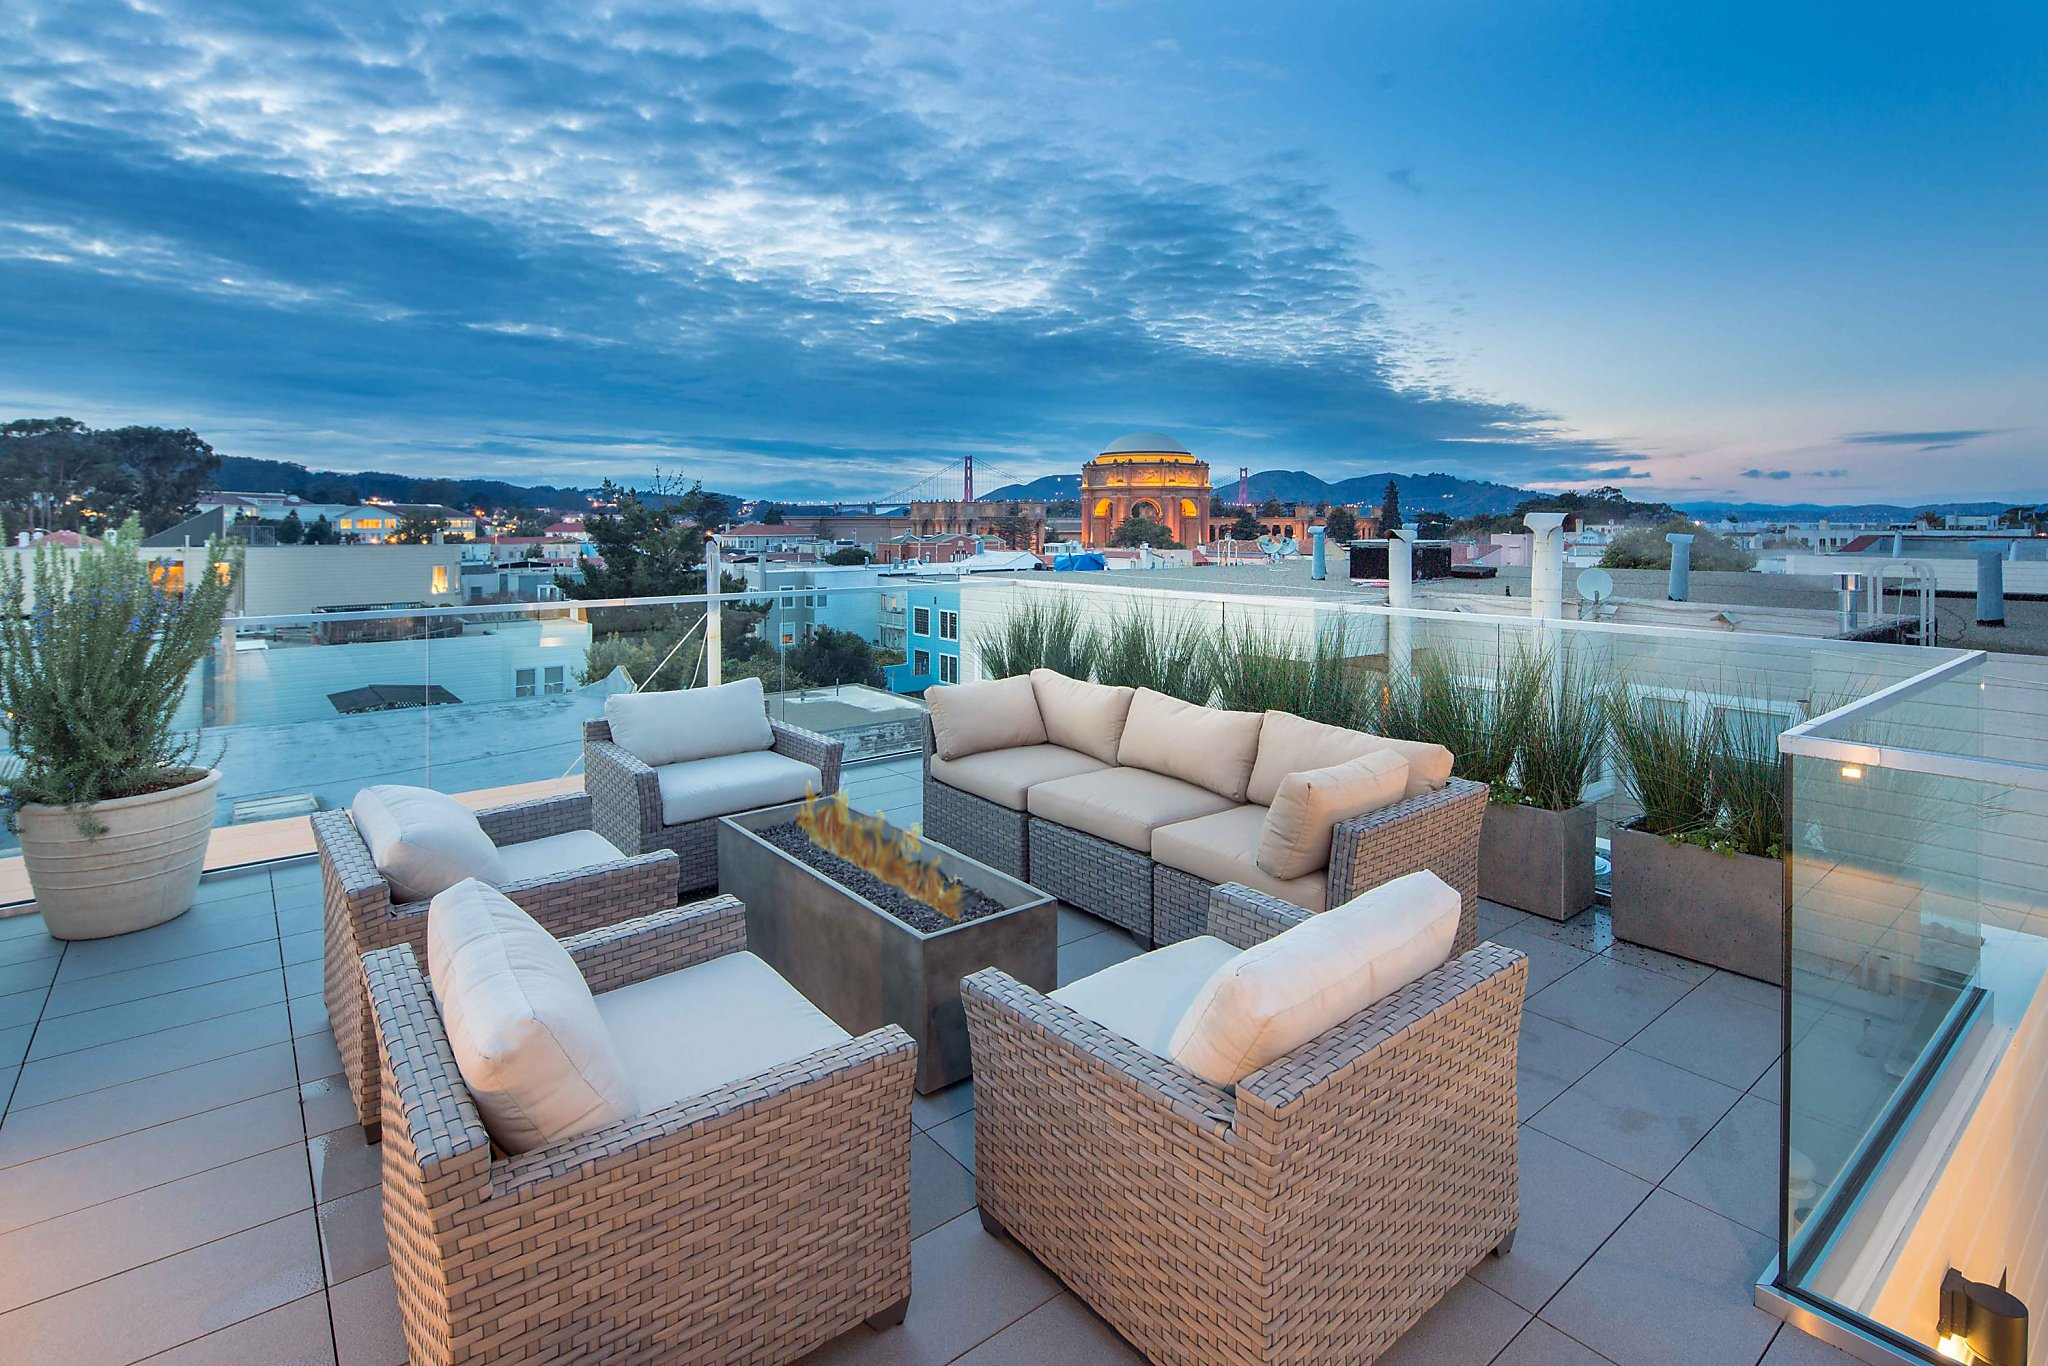 Creating a \'carefree experience\' in two-story penthouse - SFGate